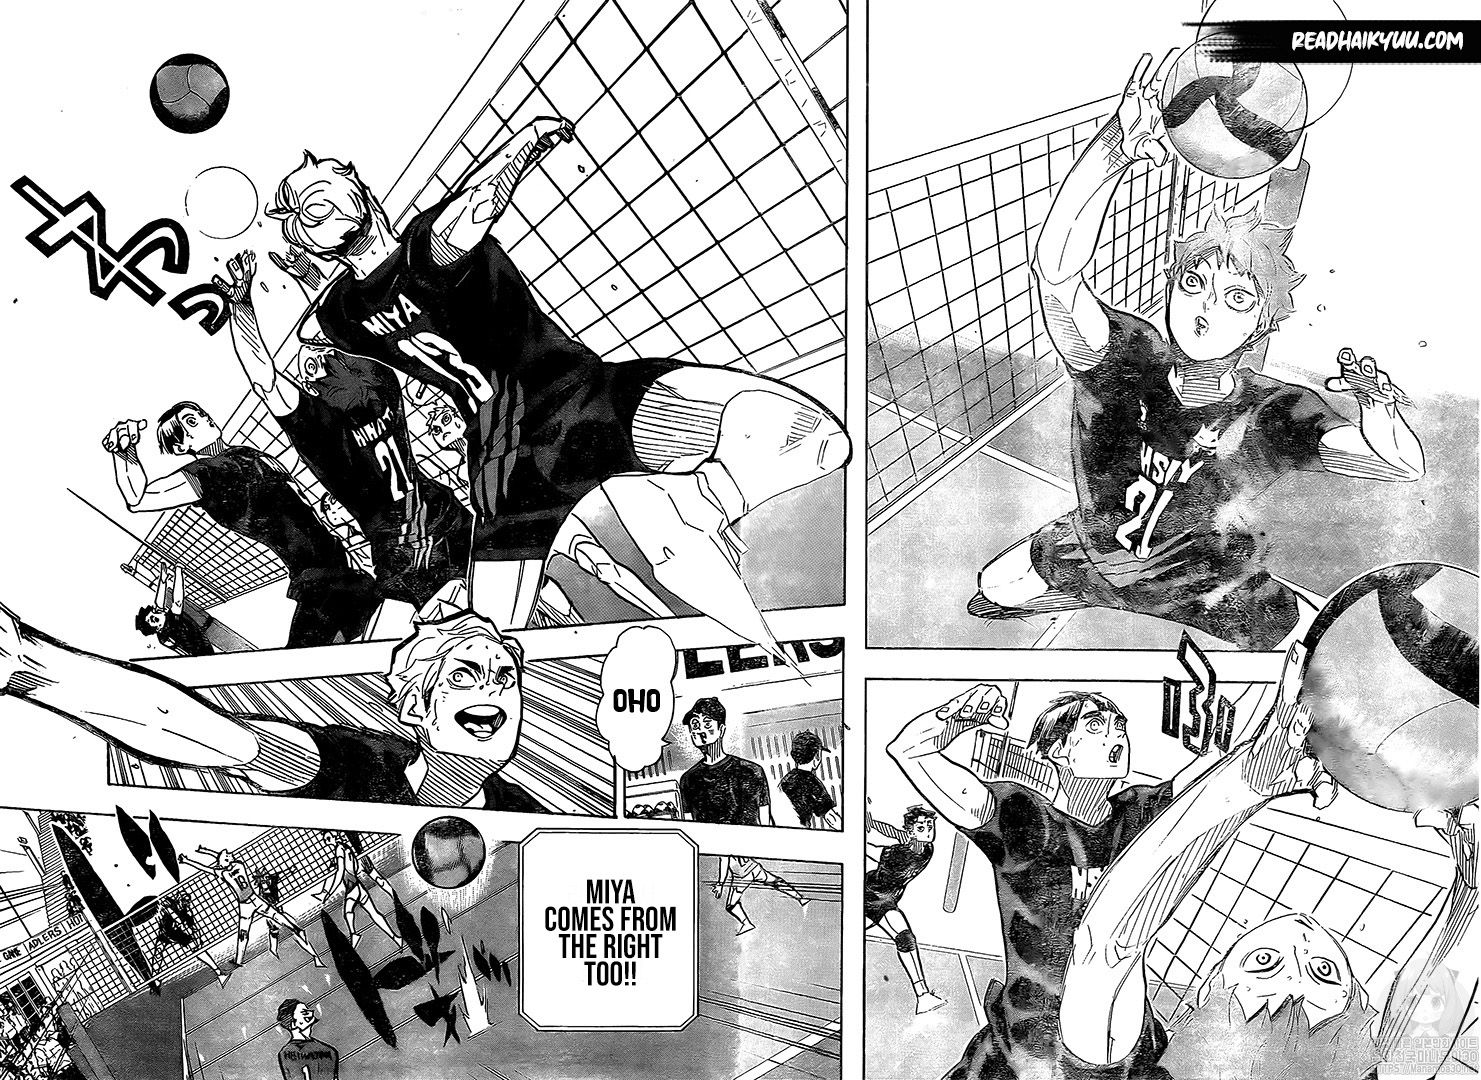 Haikyuu Chapter 385 Read Haikyuu Manga Online Haikyuu Manga Haikyuu Anime Haikyuu Fanart Ever since he saw the legendary player known as the little giant compete at the national volleyball finals, shoyo hinata has aimed to be the best volleyball player ever! haikyuu chapter 385 read haikyuu